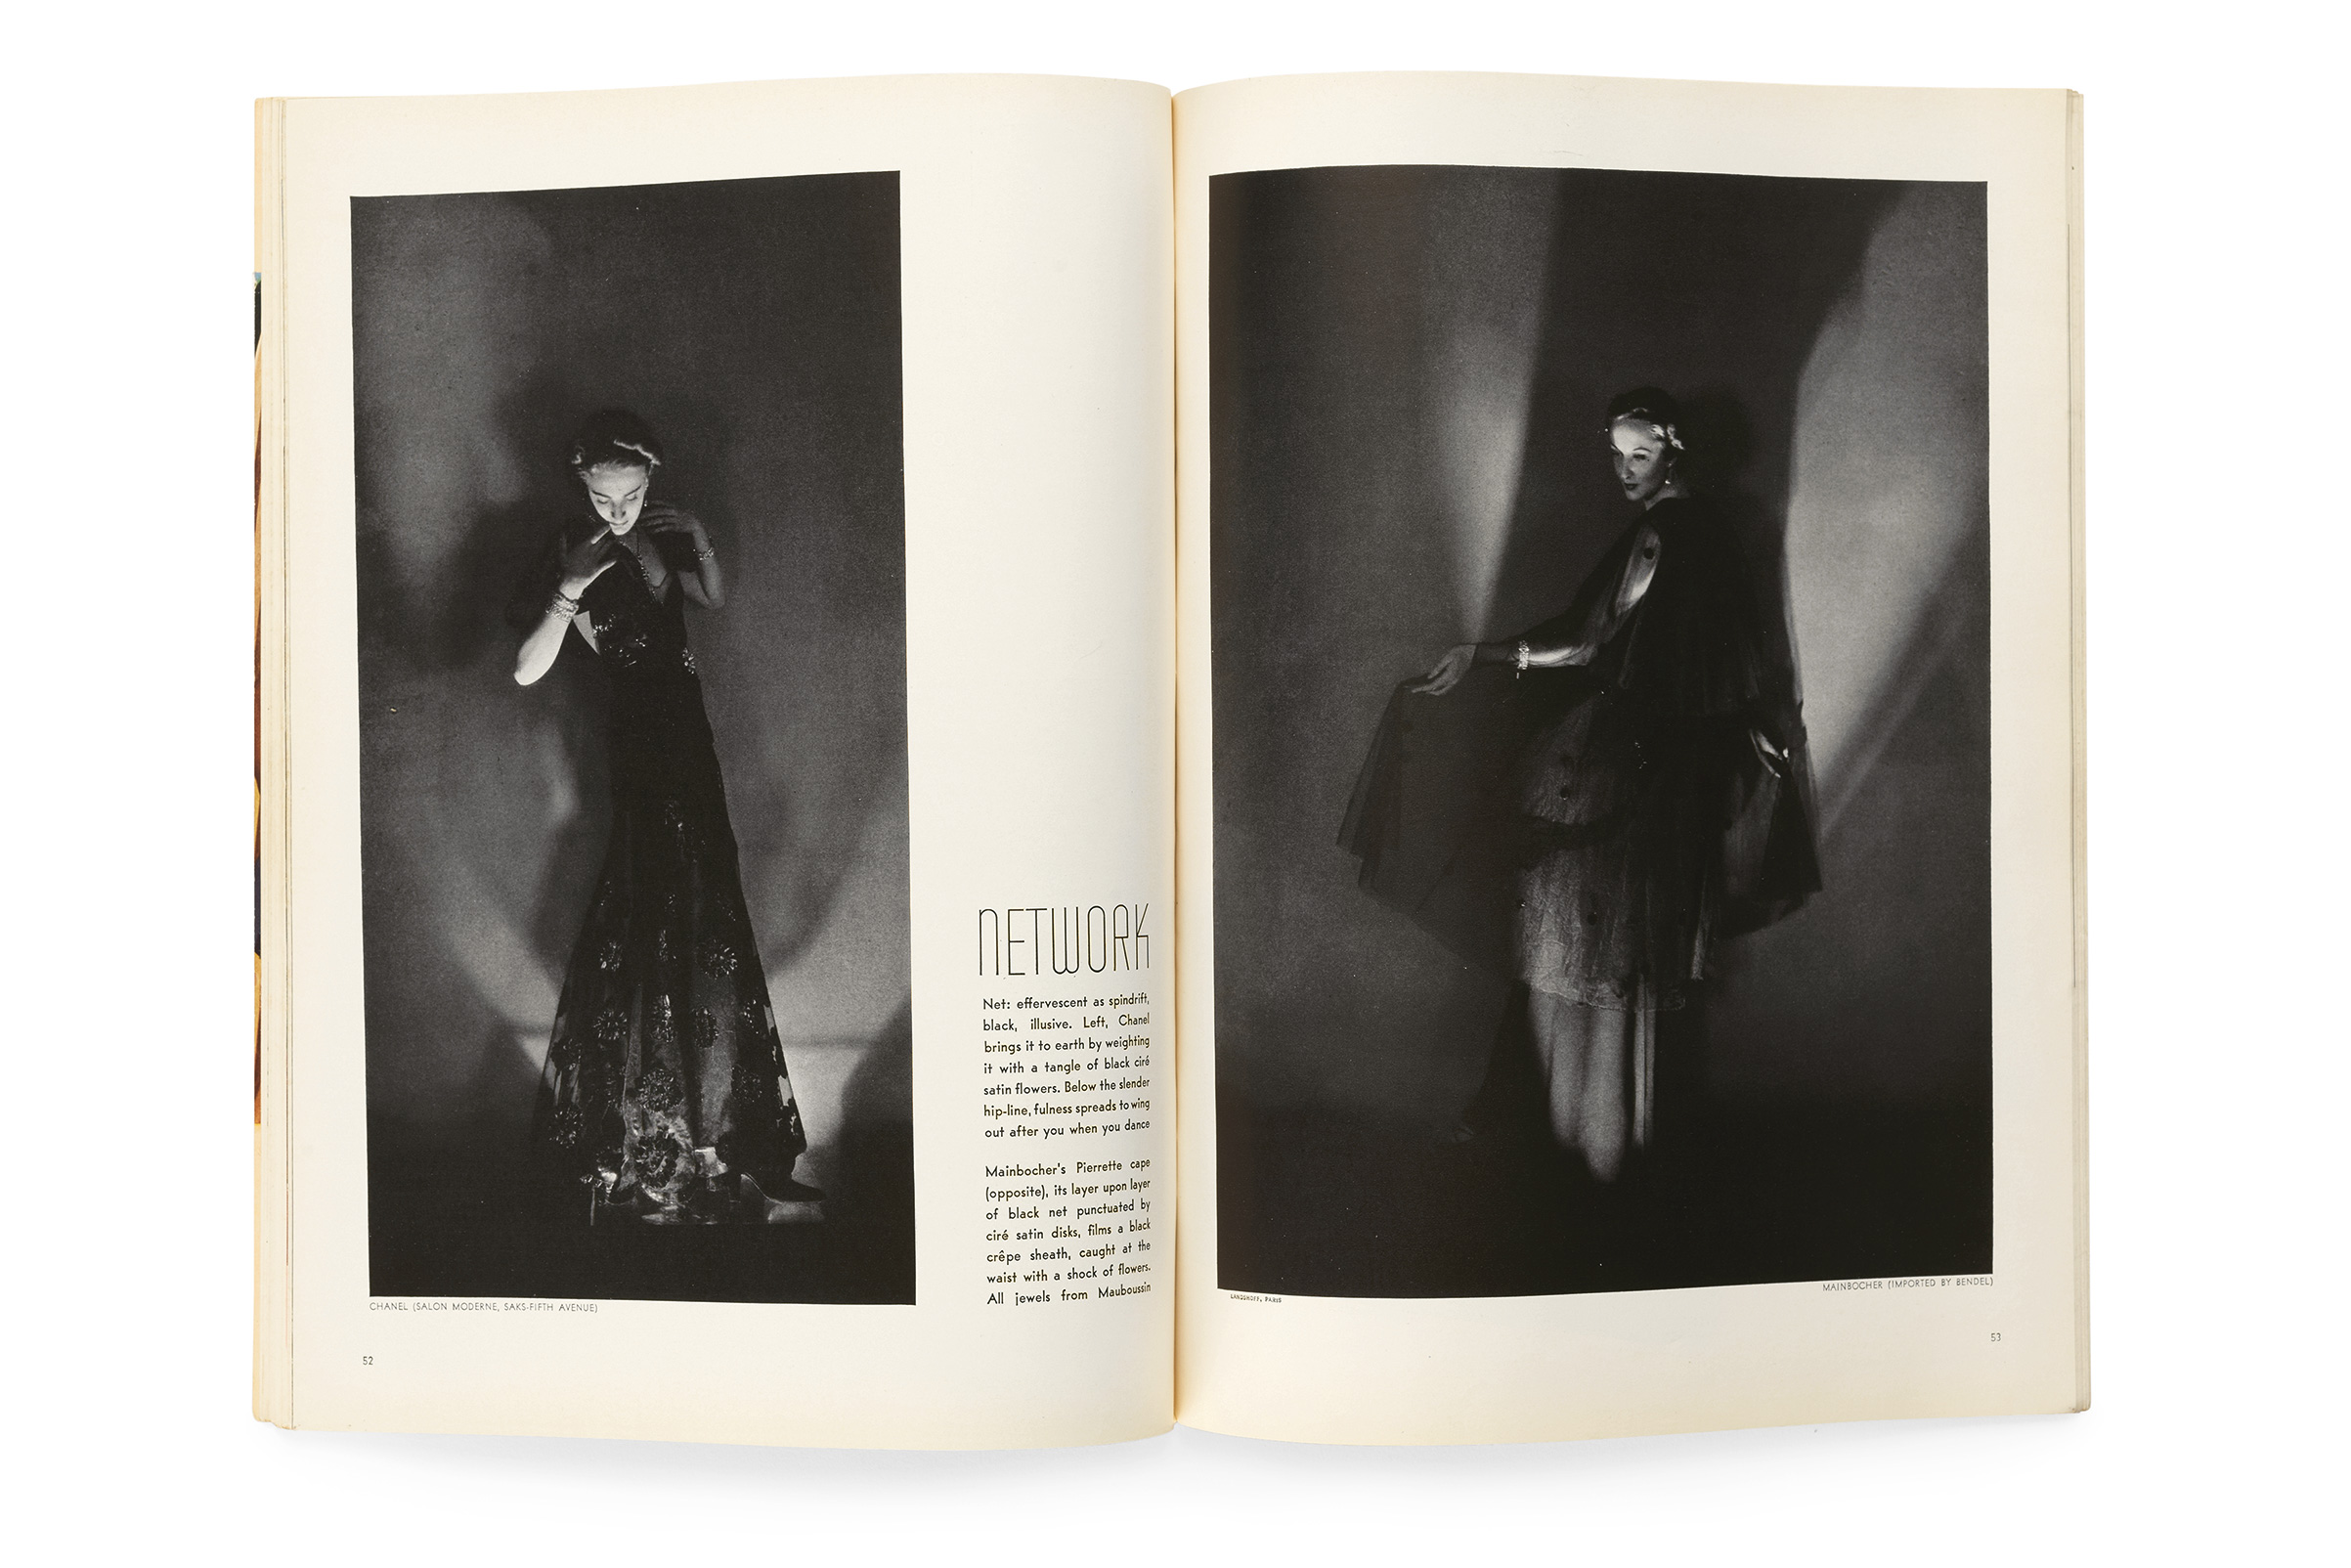 "Vogue, January 1, 1936, photographs by Herman Landshoff. ""A German photographer living in Paris, Landshoff's striking pair of photographs for the 1936 issue, models flicker like fireflies as darkness all but envelops them, an effect that recalls German expressionist cinema and anticipates film noir."""